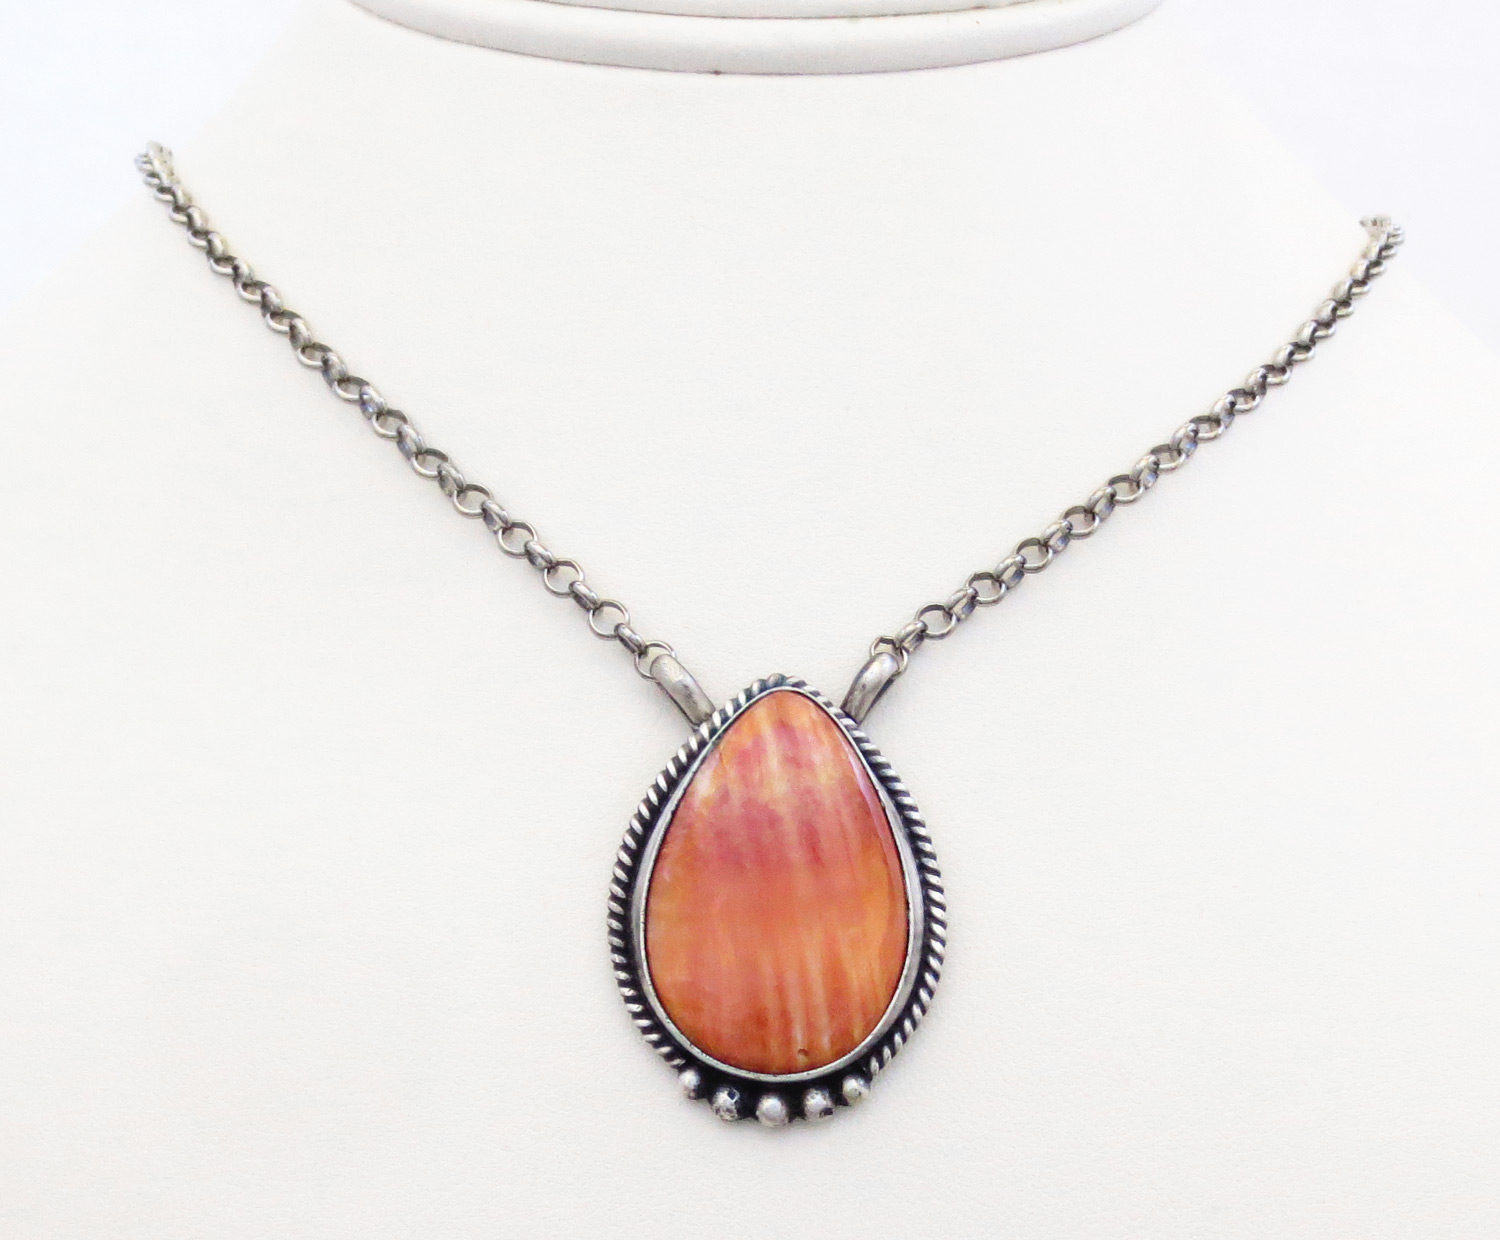 Spiny Oyster & Sterling Silver Pendant Necklace Navajo - 3862dt